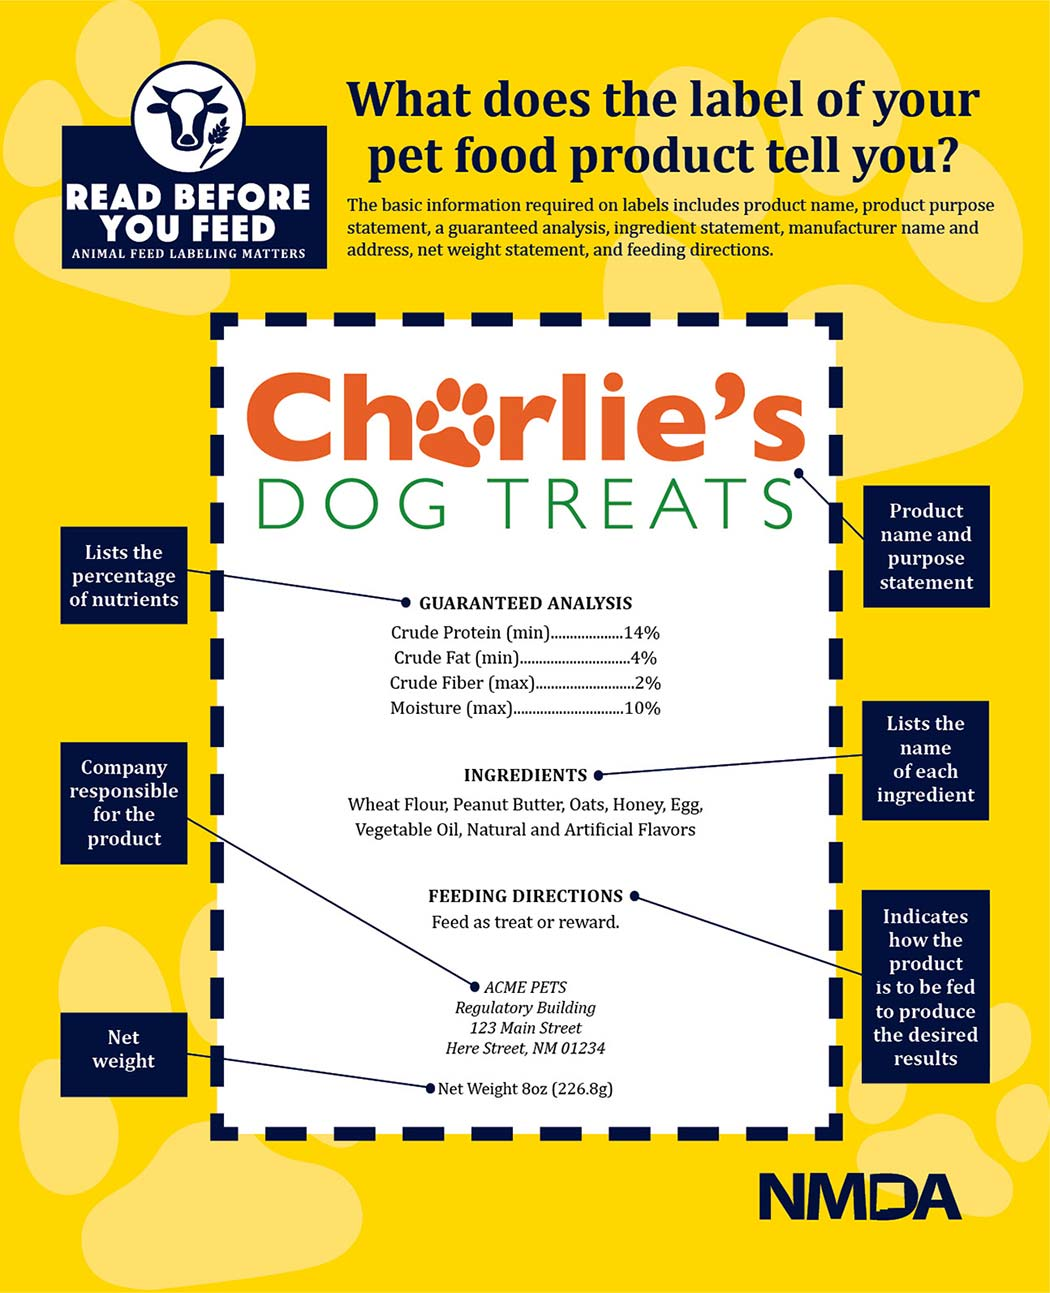 Dog food labels provide lots of helpful info including; Product name and purpose, the percentage of nutrients, the name of each ingredient, how the product is to be fed to produce the desired results, company responsible from product, and the net weight.